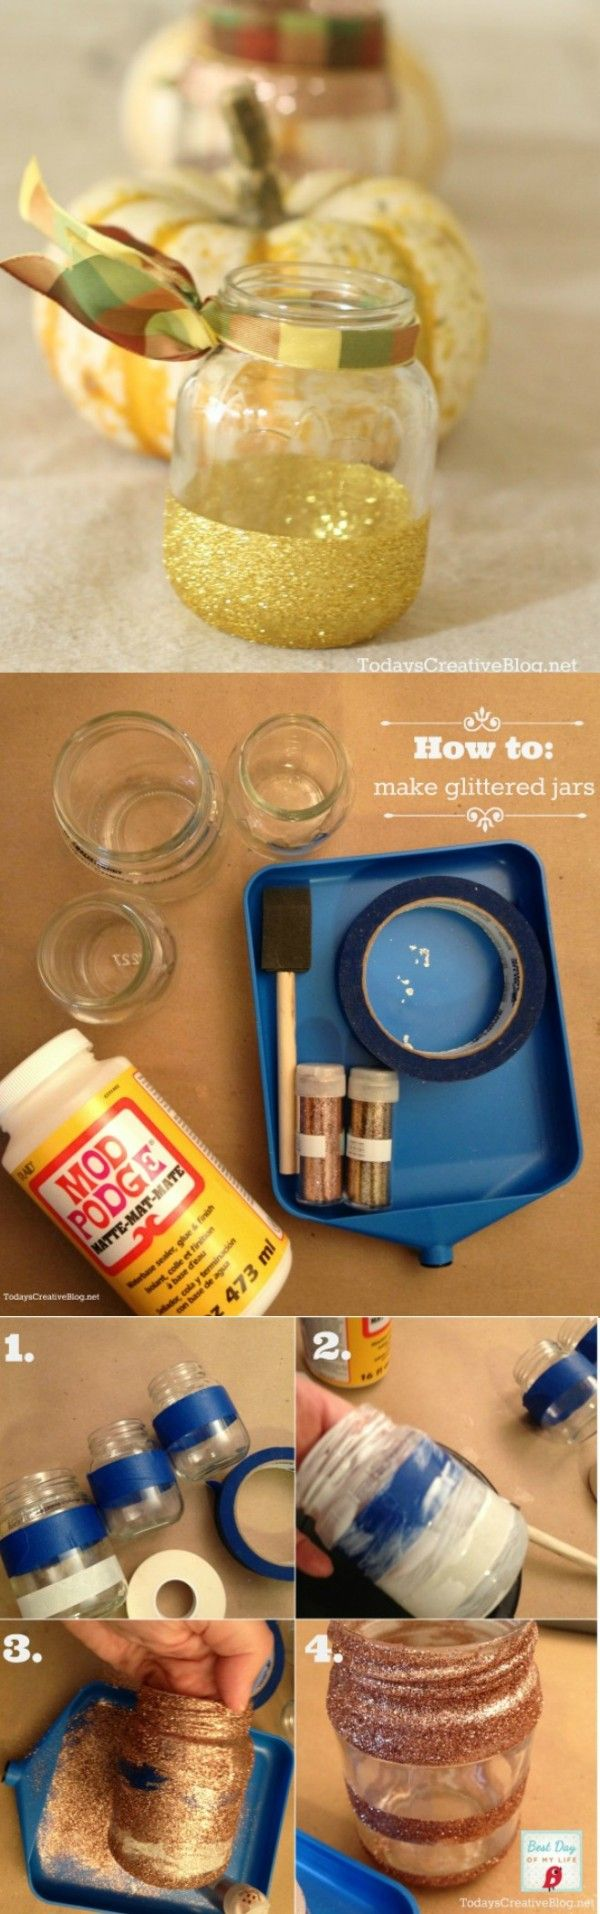 How to Glitter Jars | TodaysCreativeBlog.net Mod Podge, glitter, fall decor, fall table